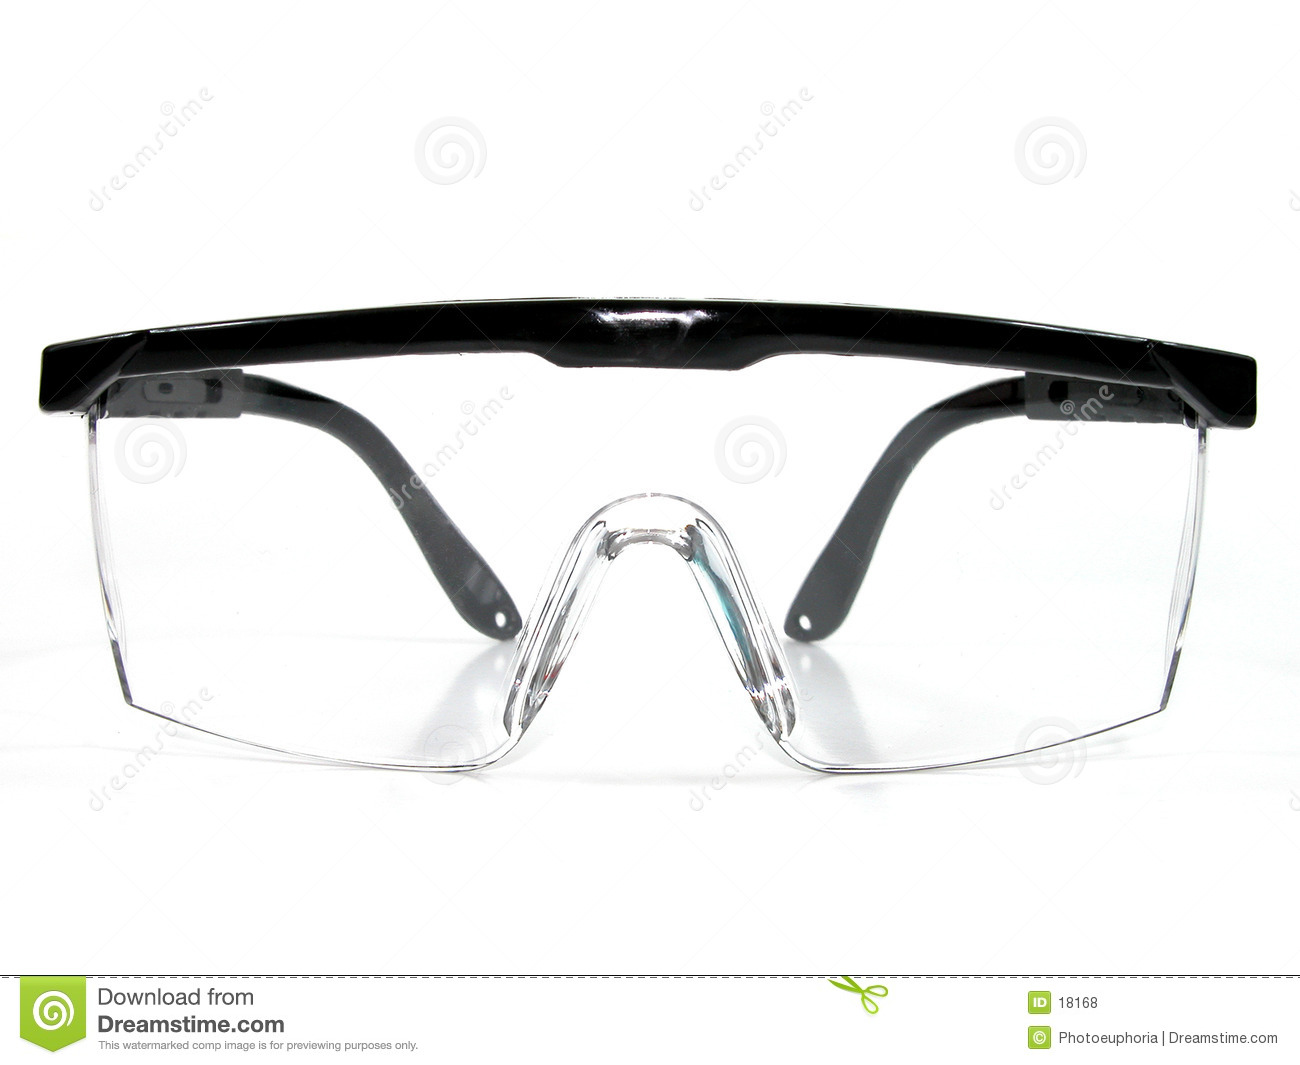 Tools & Construction: Plastic Safety Googles Royalty Free Stock Photos ...